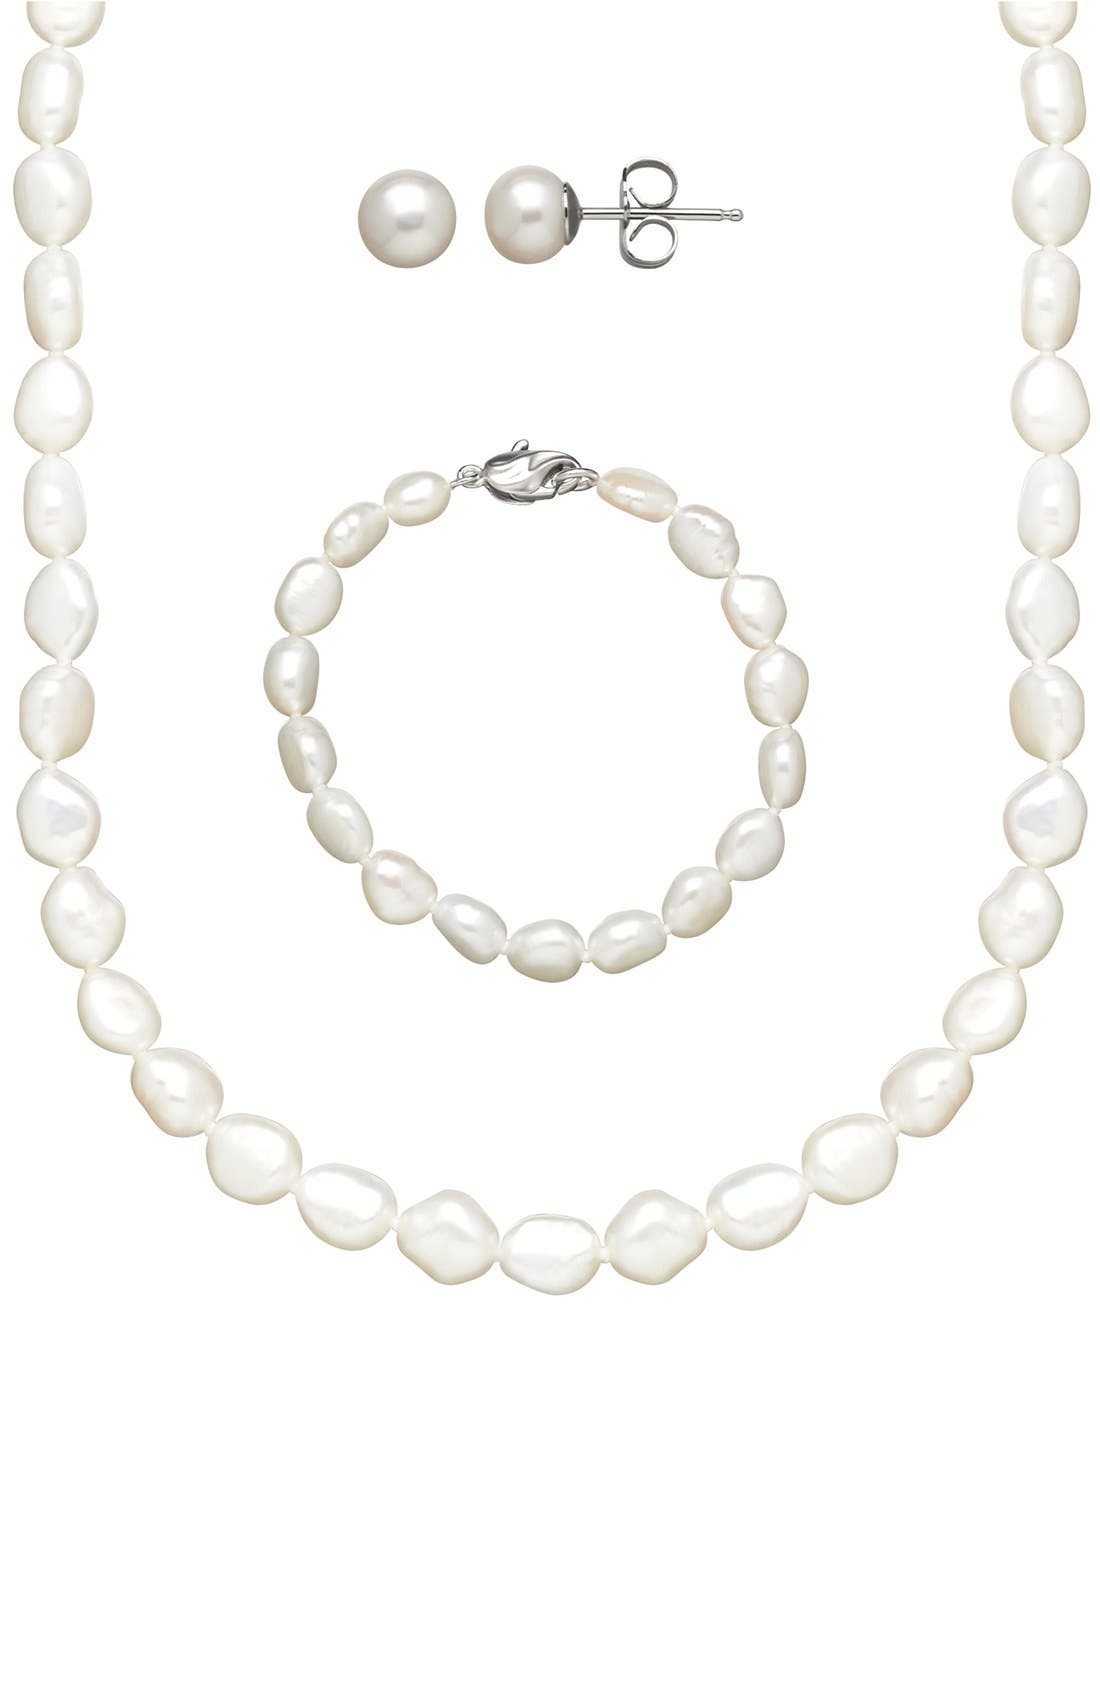 Freshwater Pearl Necklace, Bracelet & Earrings,                         Main,                         color, 100